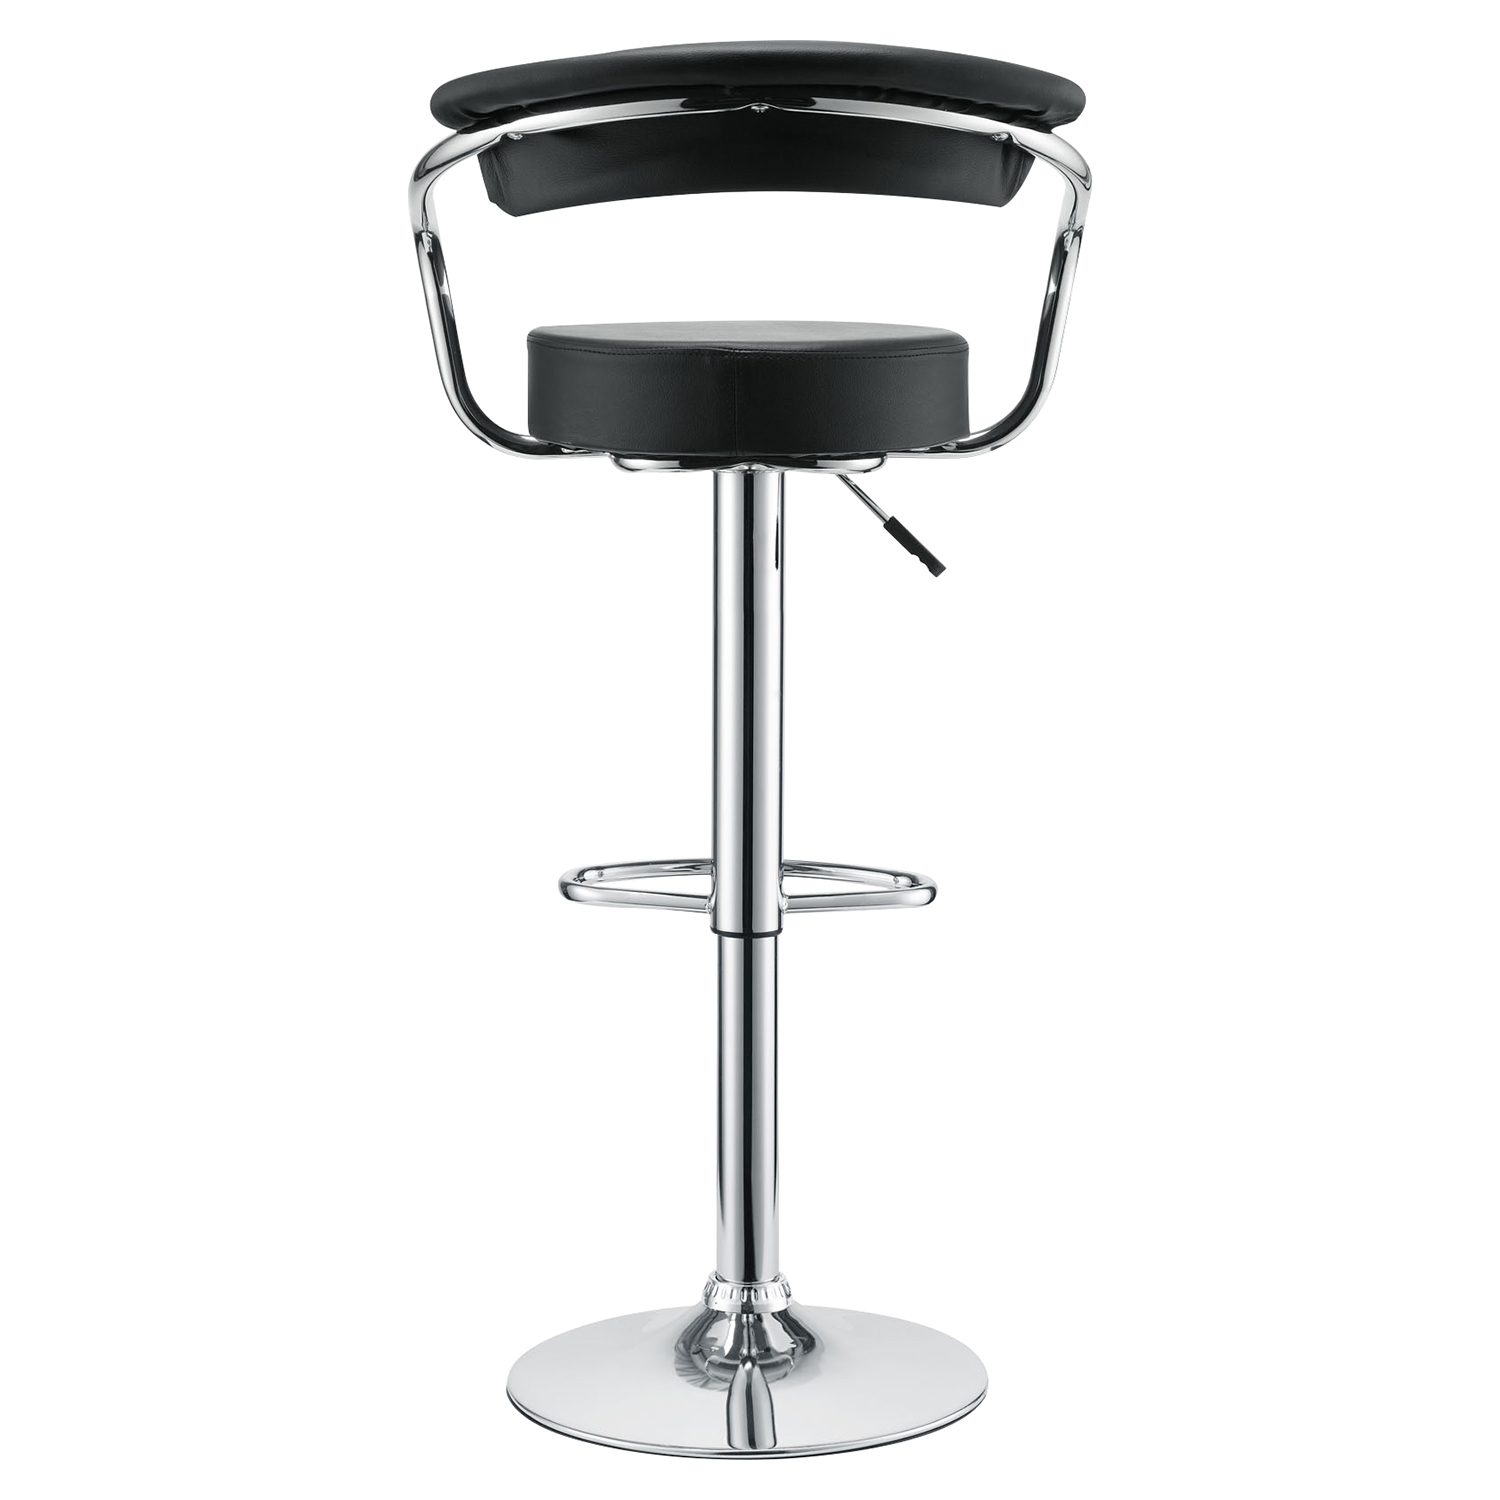 Diner Bar Stool Black Swivel Set of 4 DCG Stores : eei 931 blk 3 from www.dcgstores.com size 1000 x 1000 jpeg 116kB